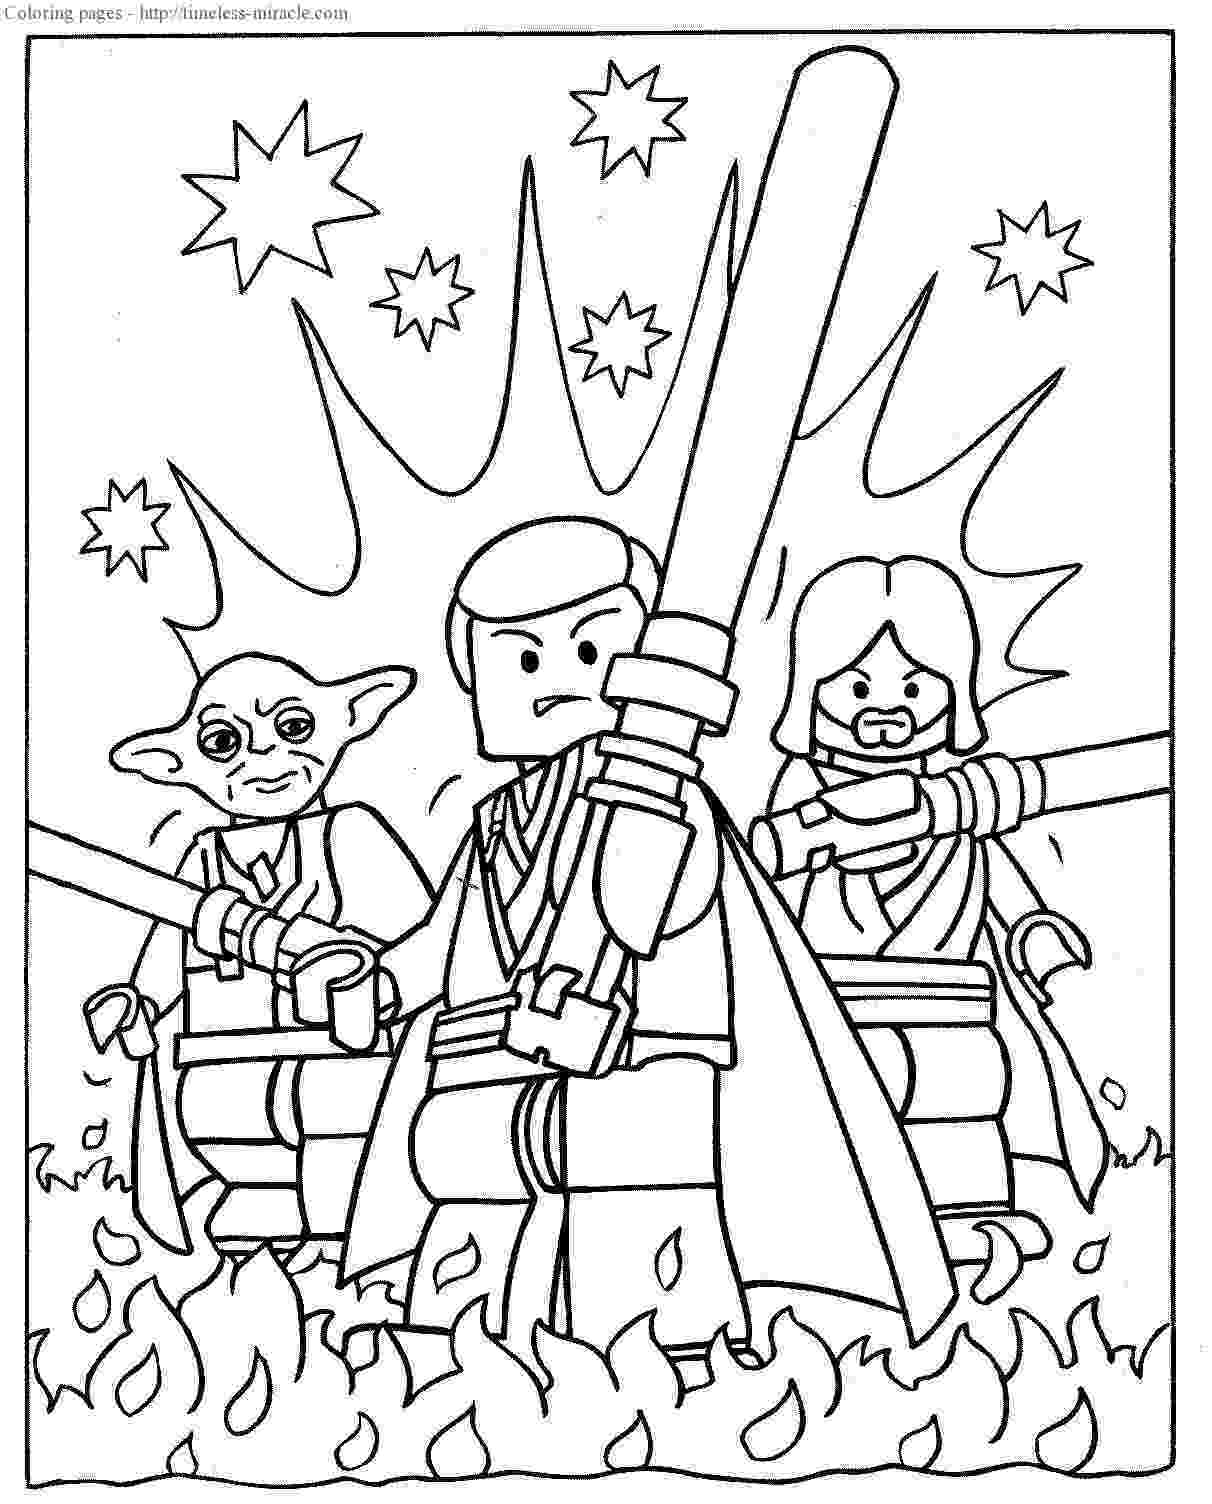 lego star wars color pages star wars the force awakens lego coloring pages coloring wars star color pages lego